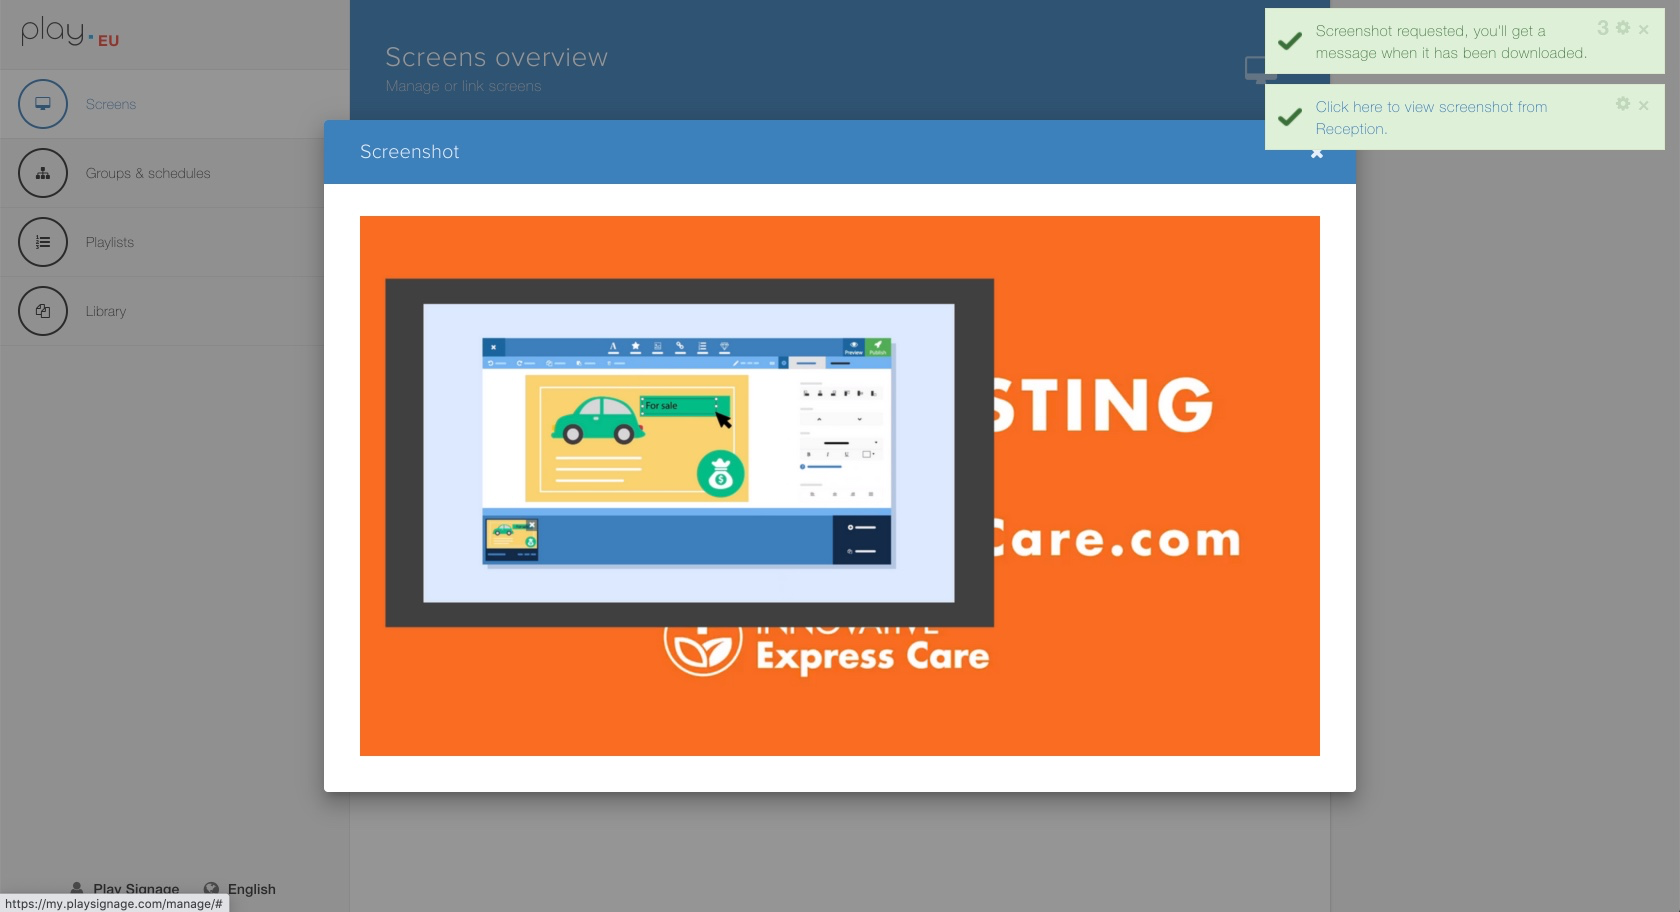 Want to check what's on the screen? Use our live screenshot feature.